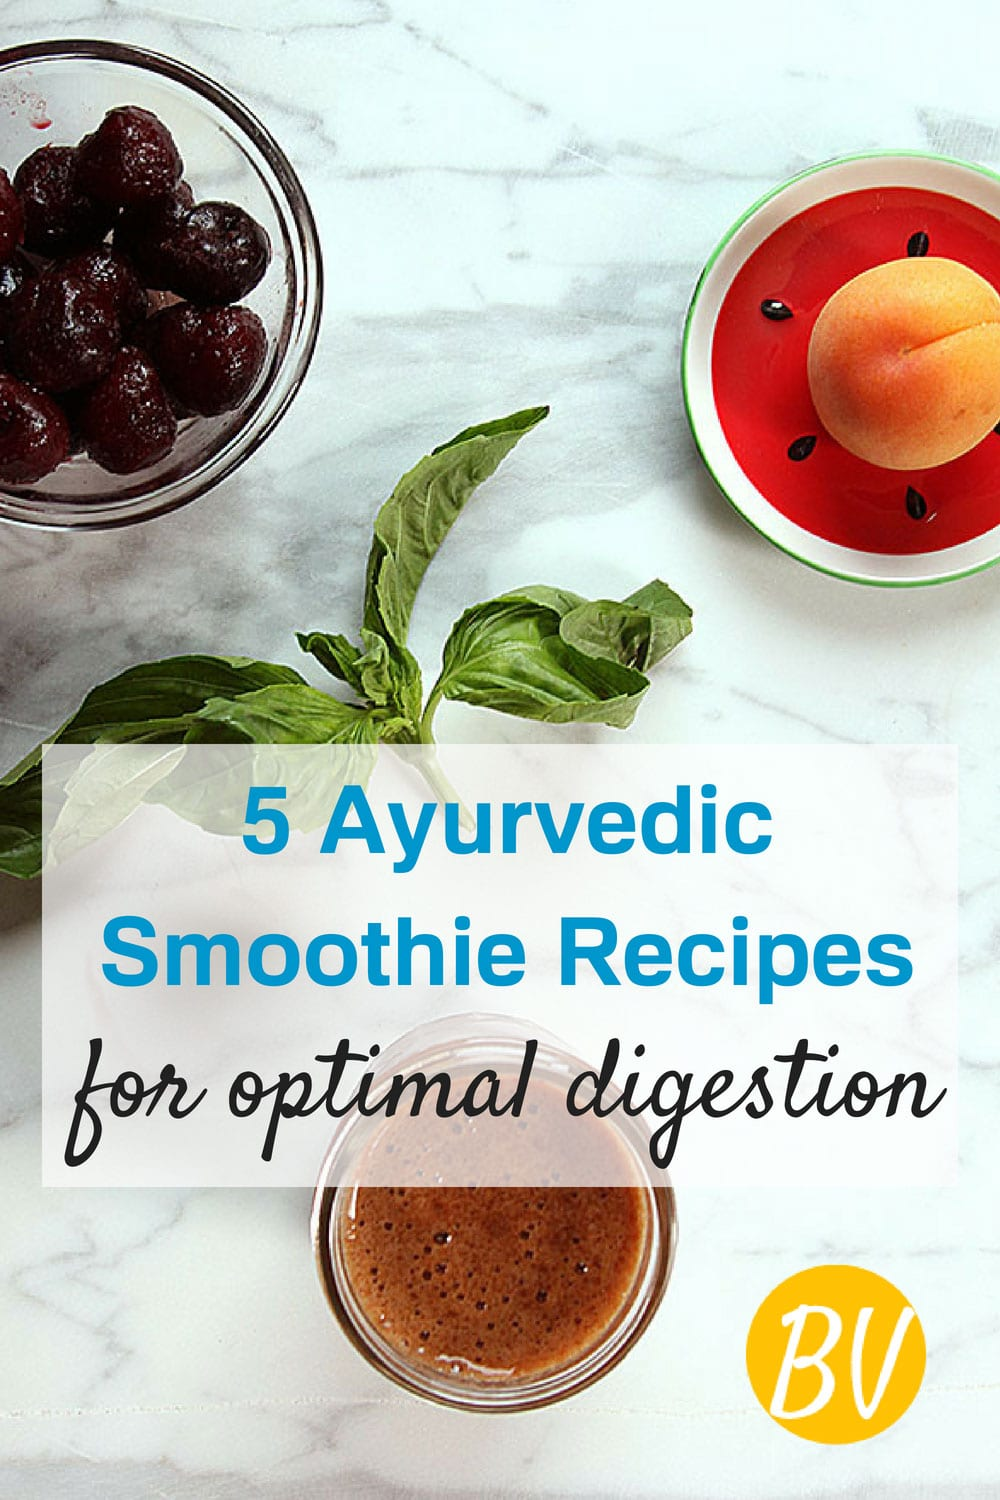 5 Ayurvedic Smoothie Recipes For Optimal Digestion